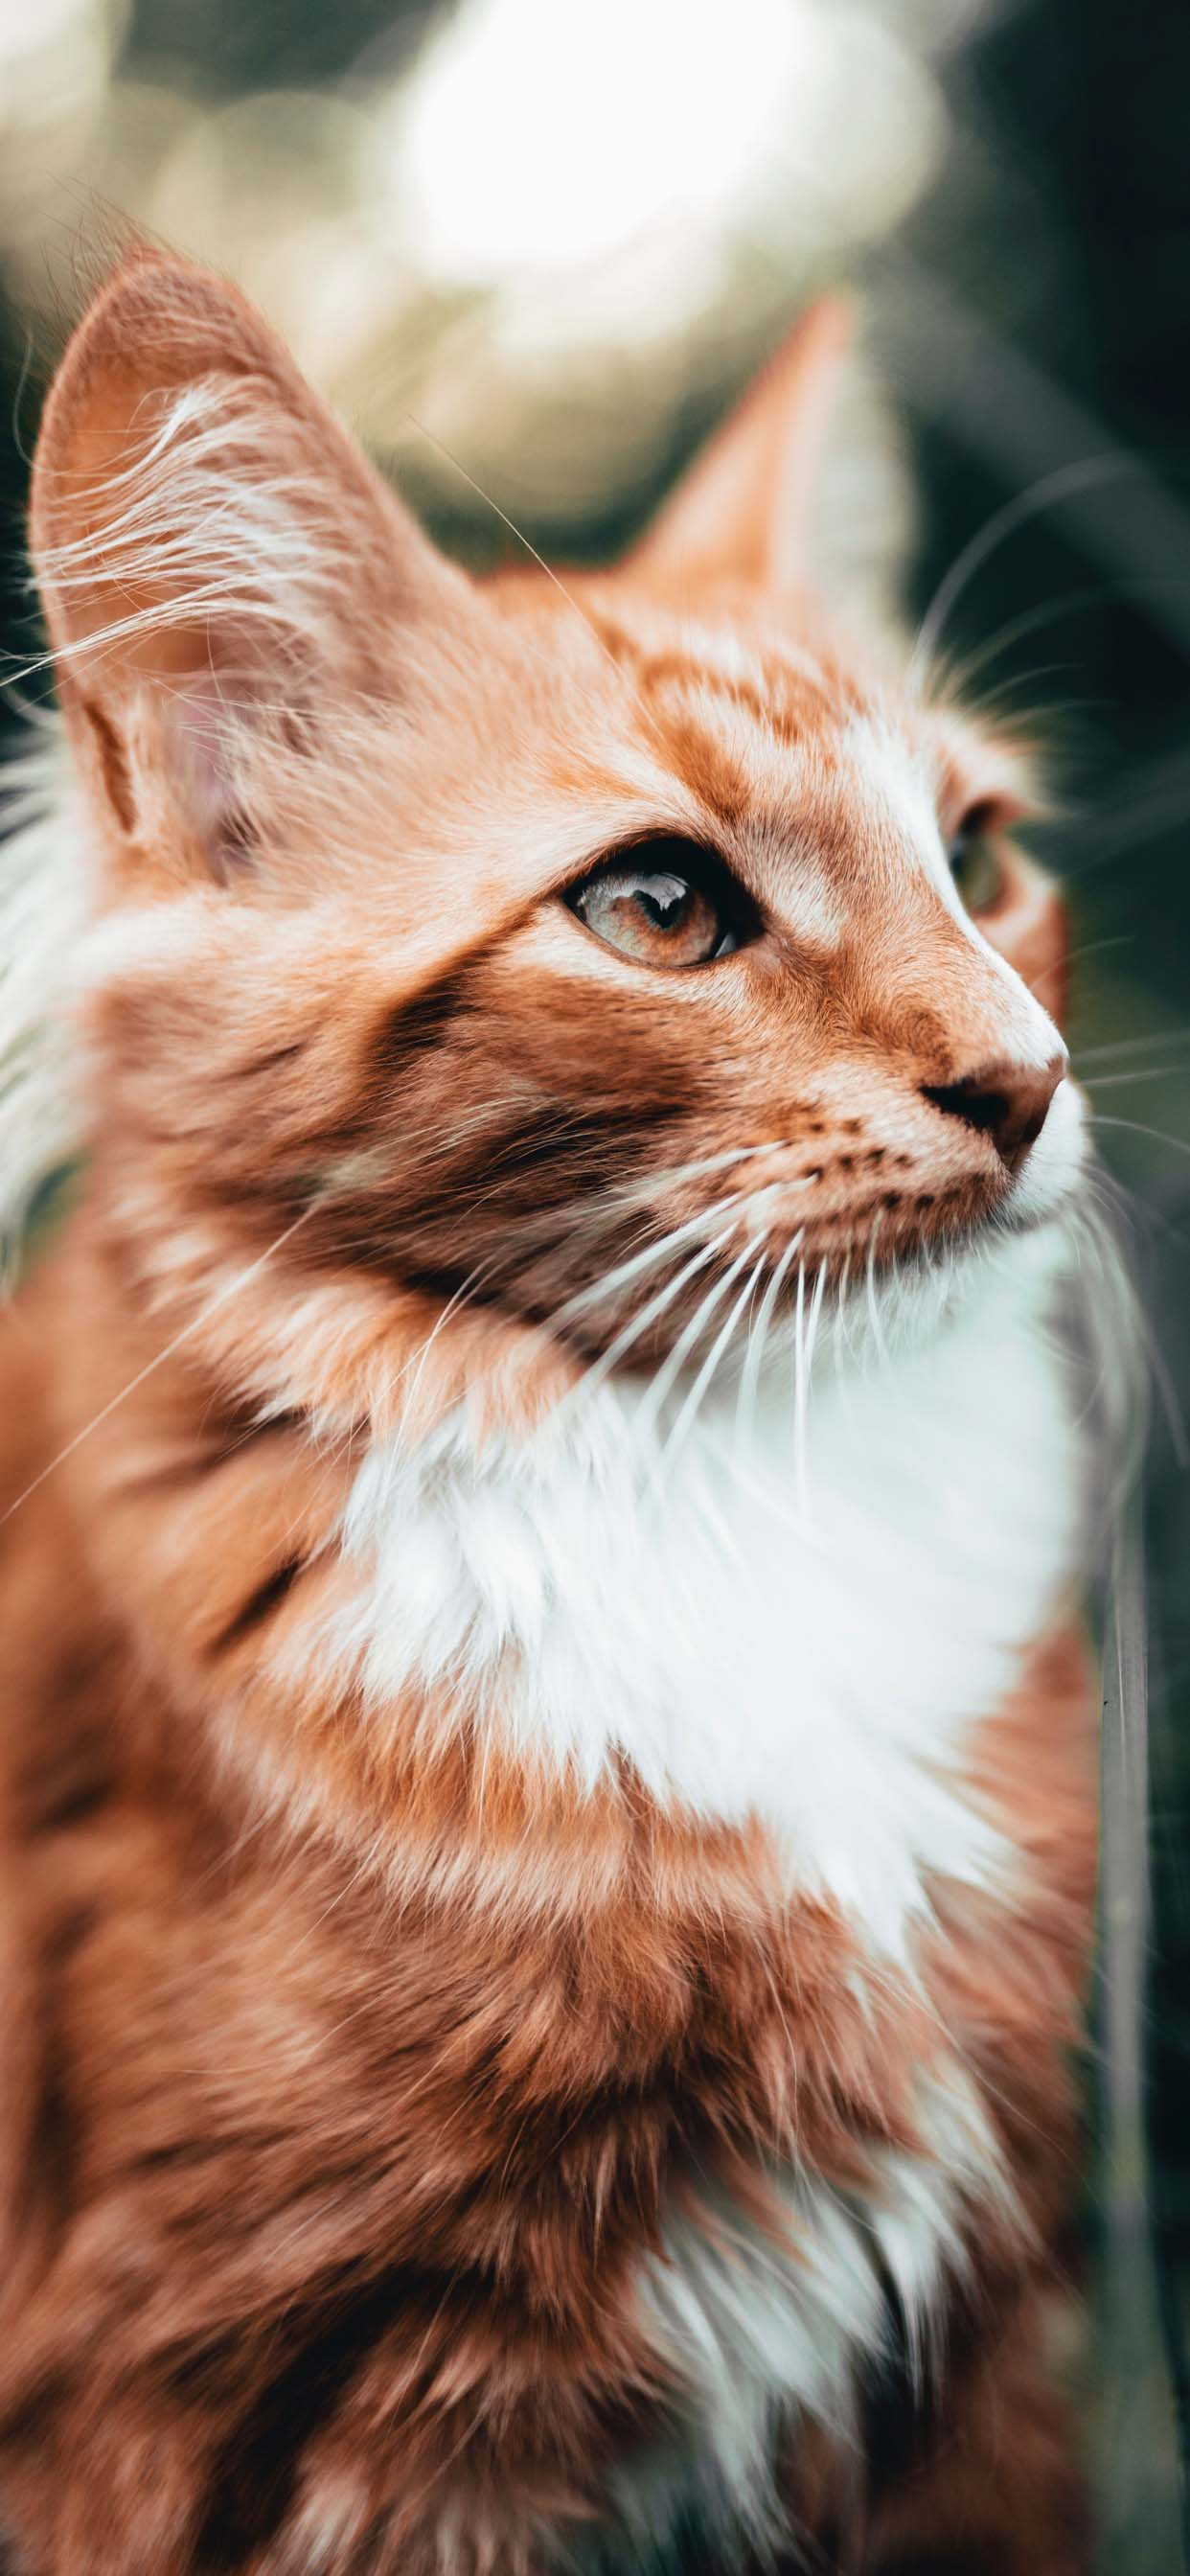 Beautiful Cat Portrait - Orange And White Cat